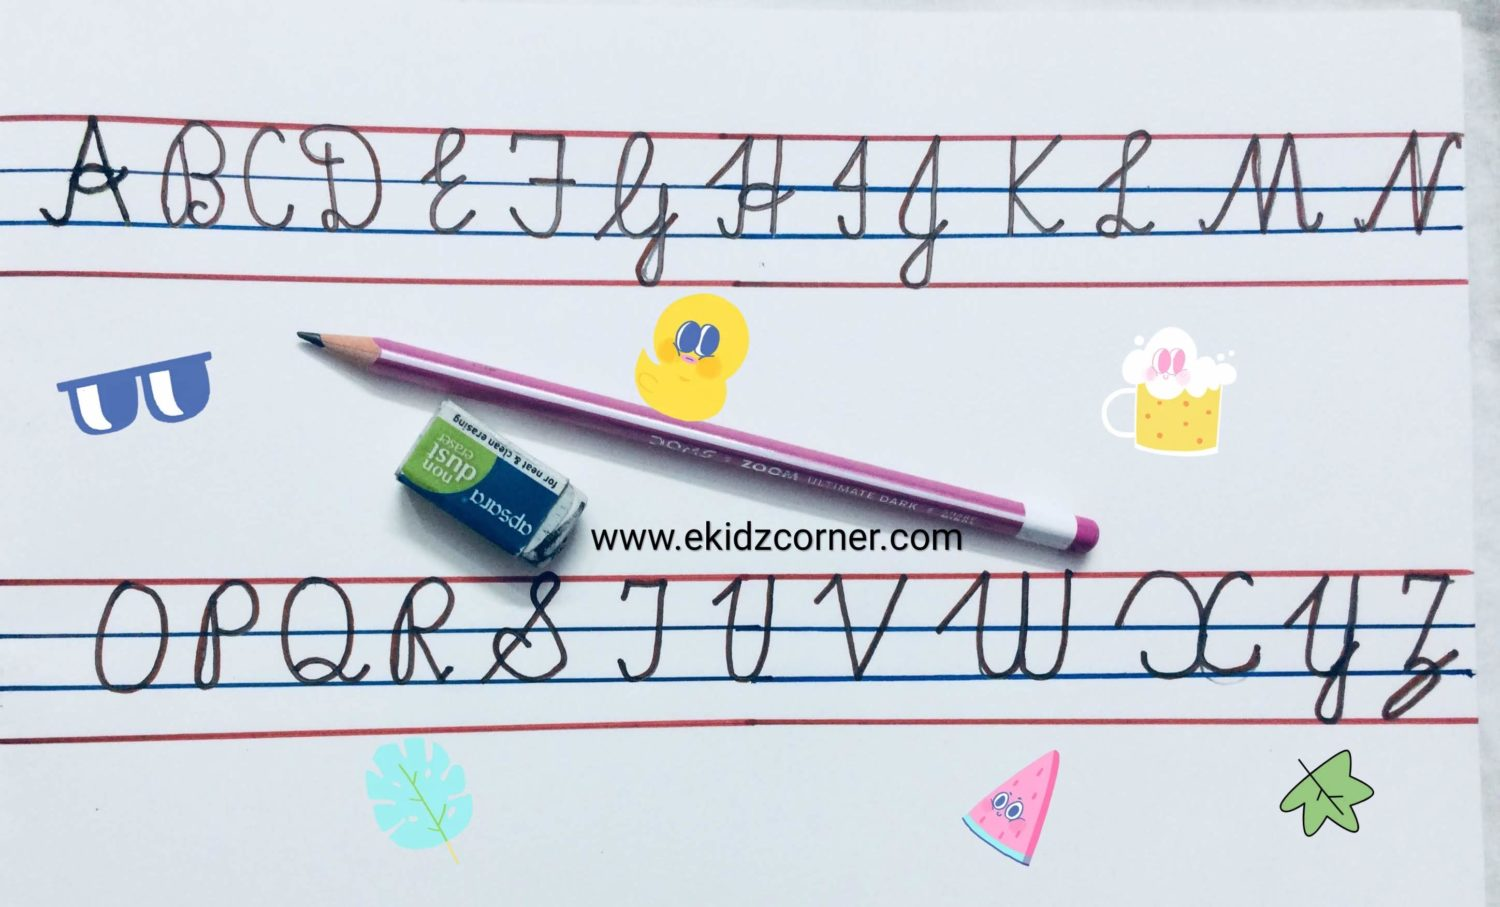 How To Write Capital Letter Upper Case In Cursive Writing